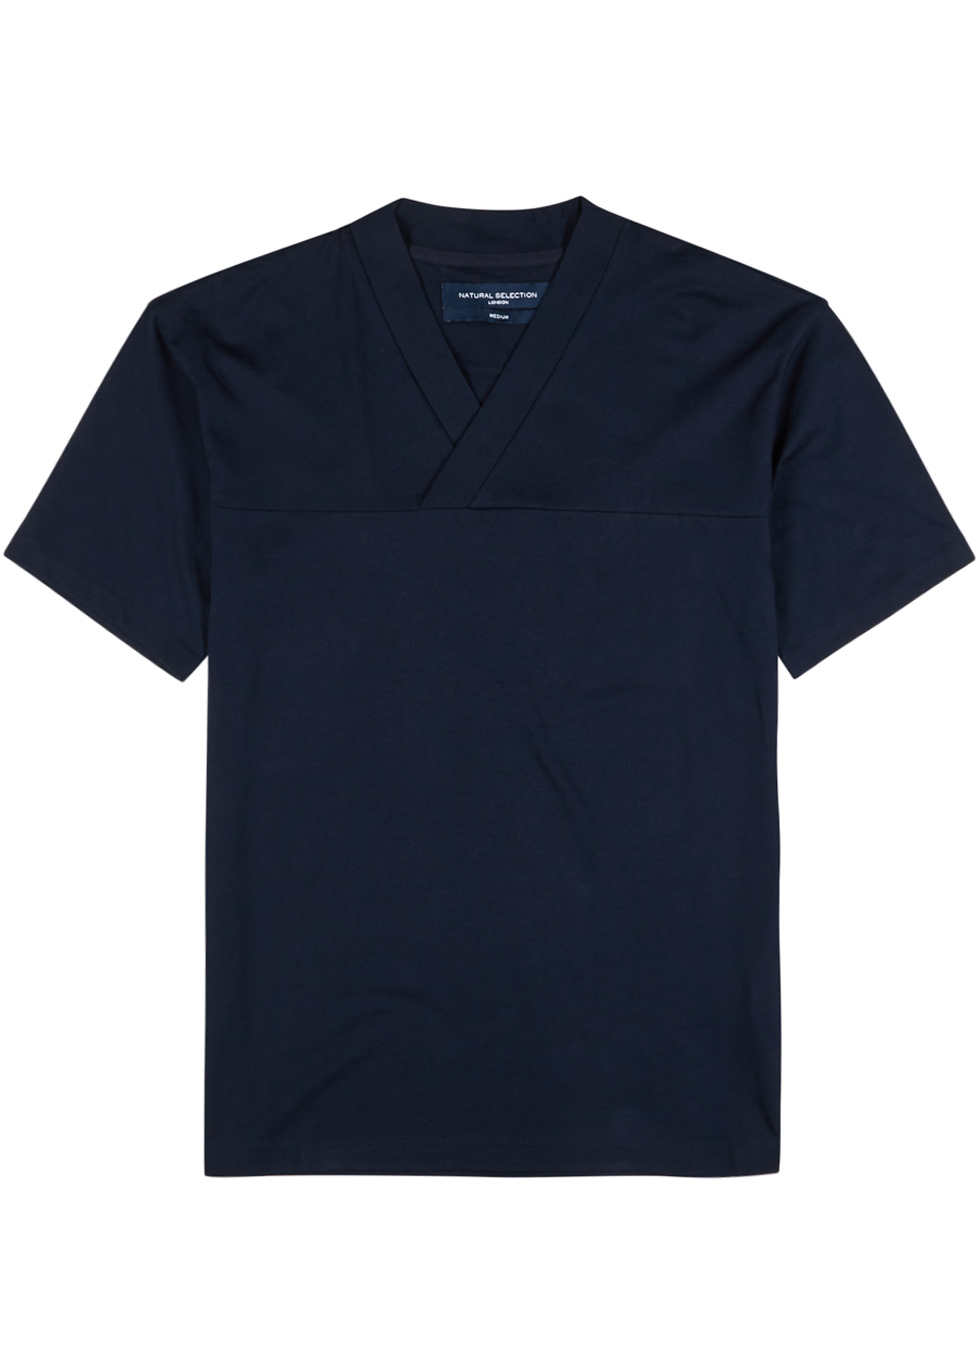 NATURAL SELECTION Veejay Navy Supima Cotton T-Shirt in Blue